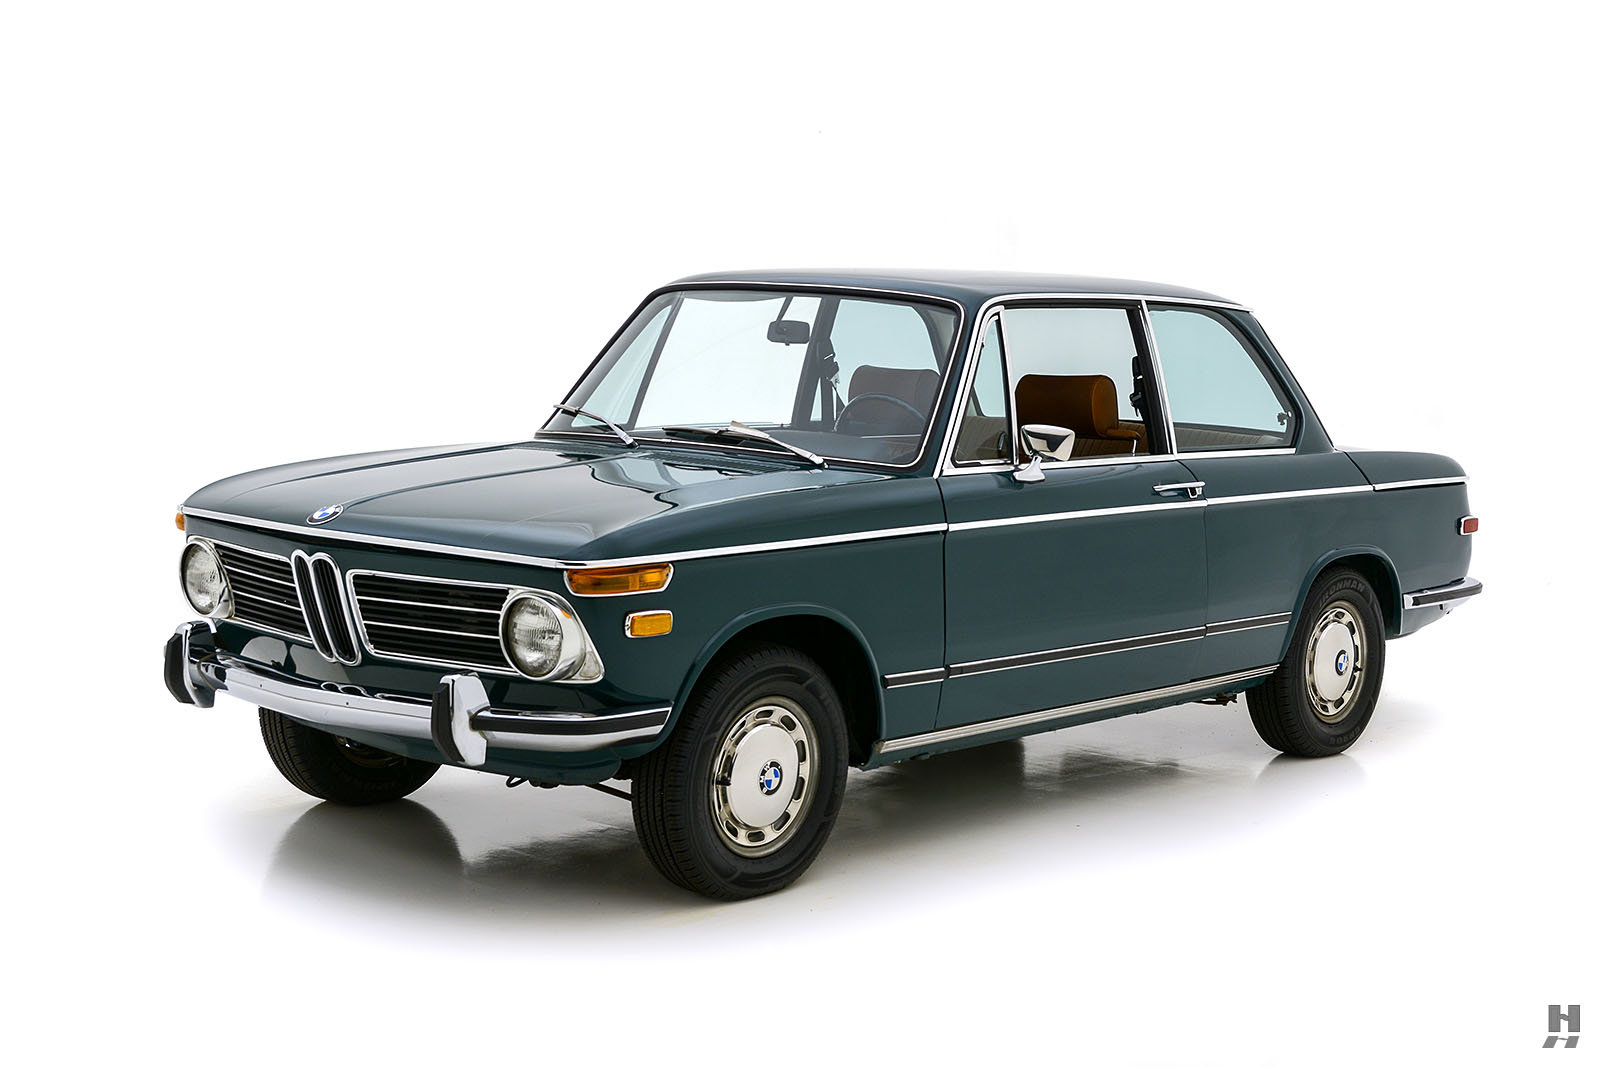 1972 BMW 2002 COUPE For Sale (picture 1 of 6)